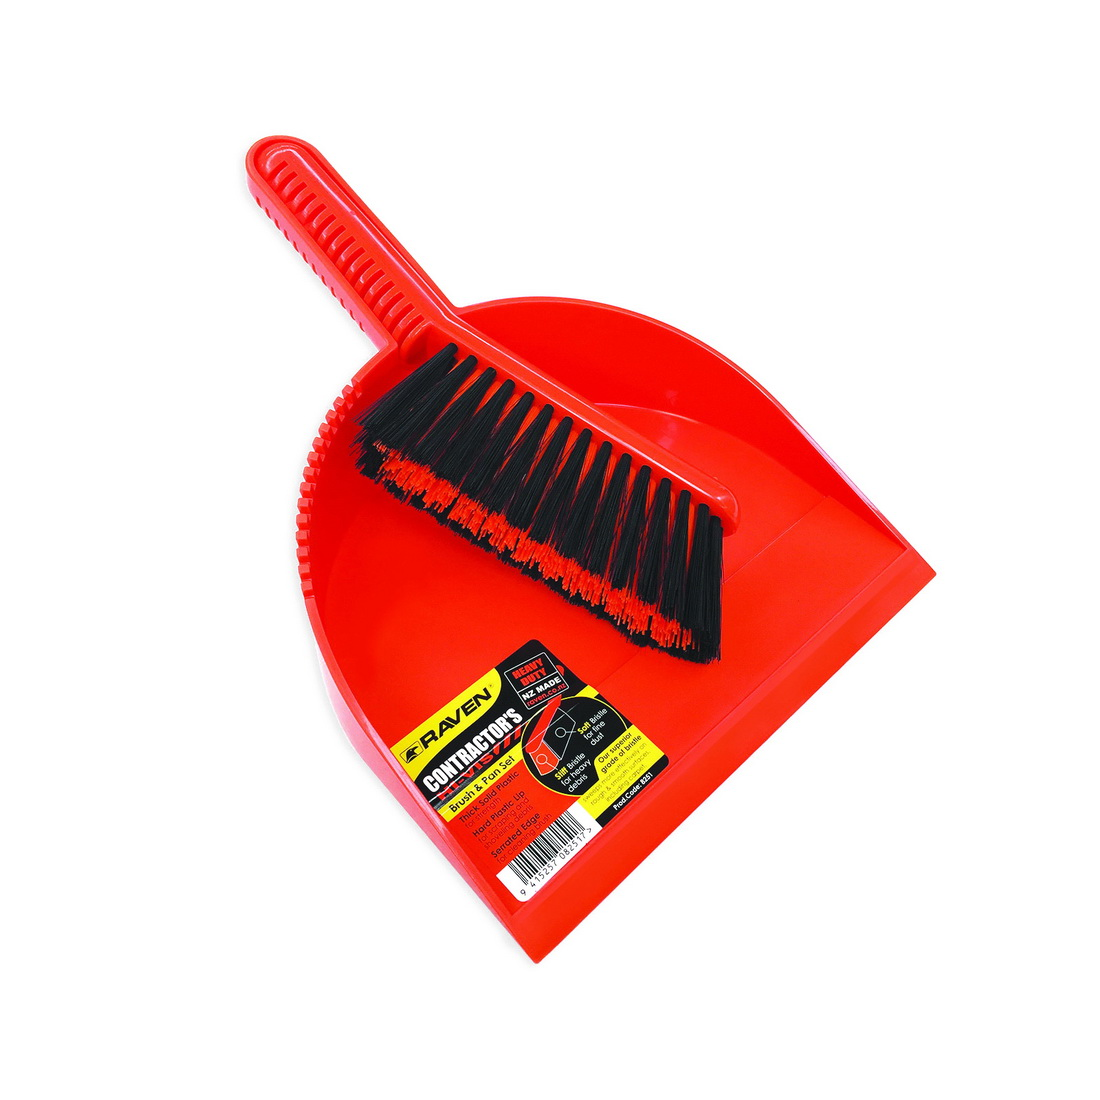 Raven Commercial Hi-Vis Utility Brush & Pan Set 8251